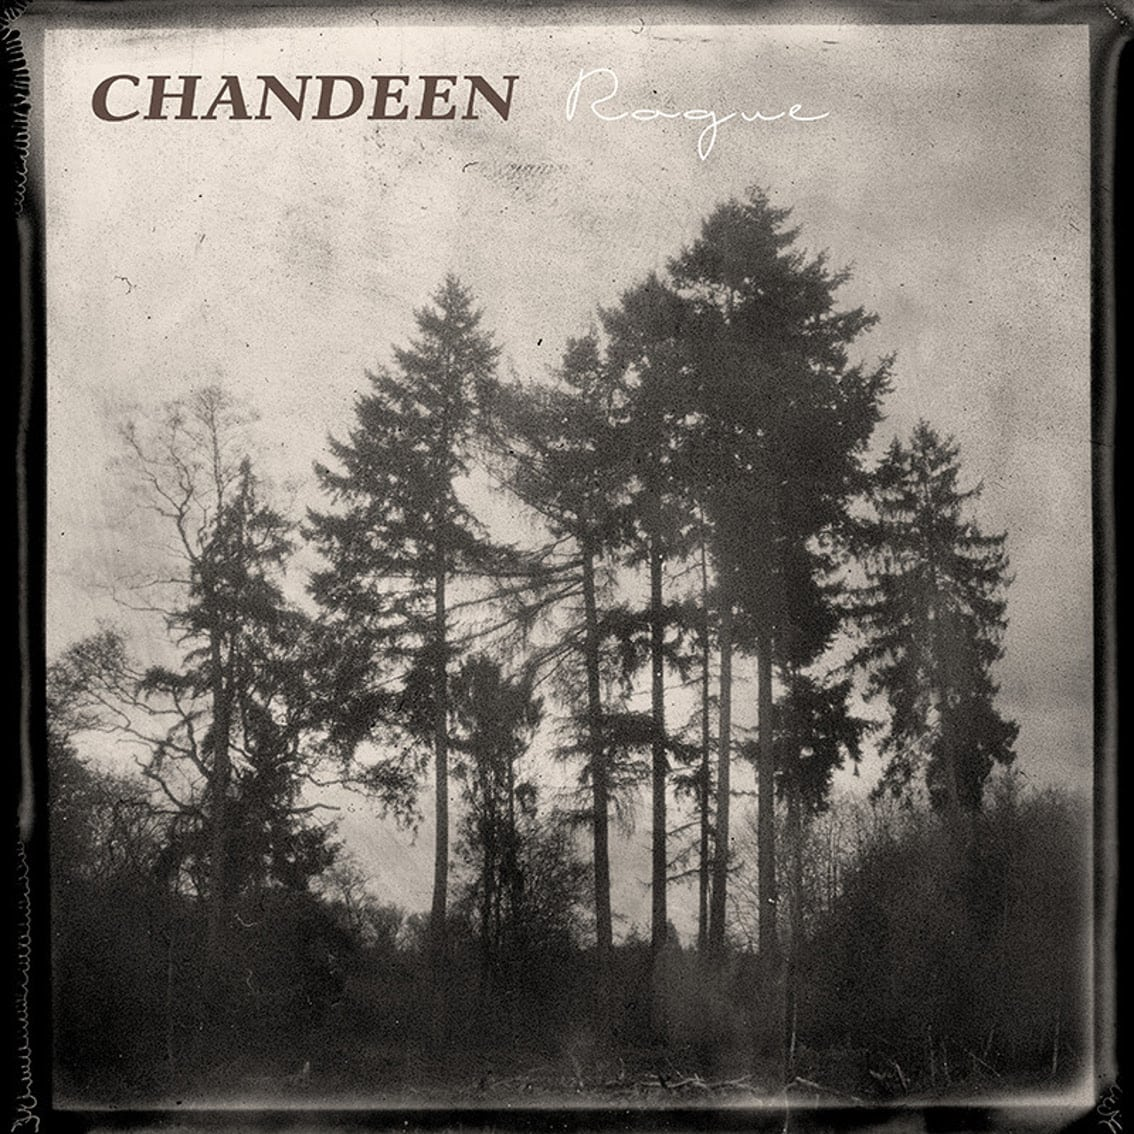 Chandeen returns with brand new 5-track EP'Rogue' - listen here